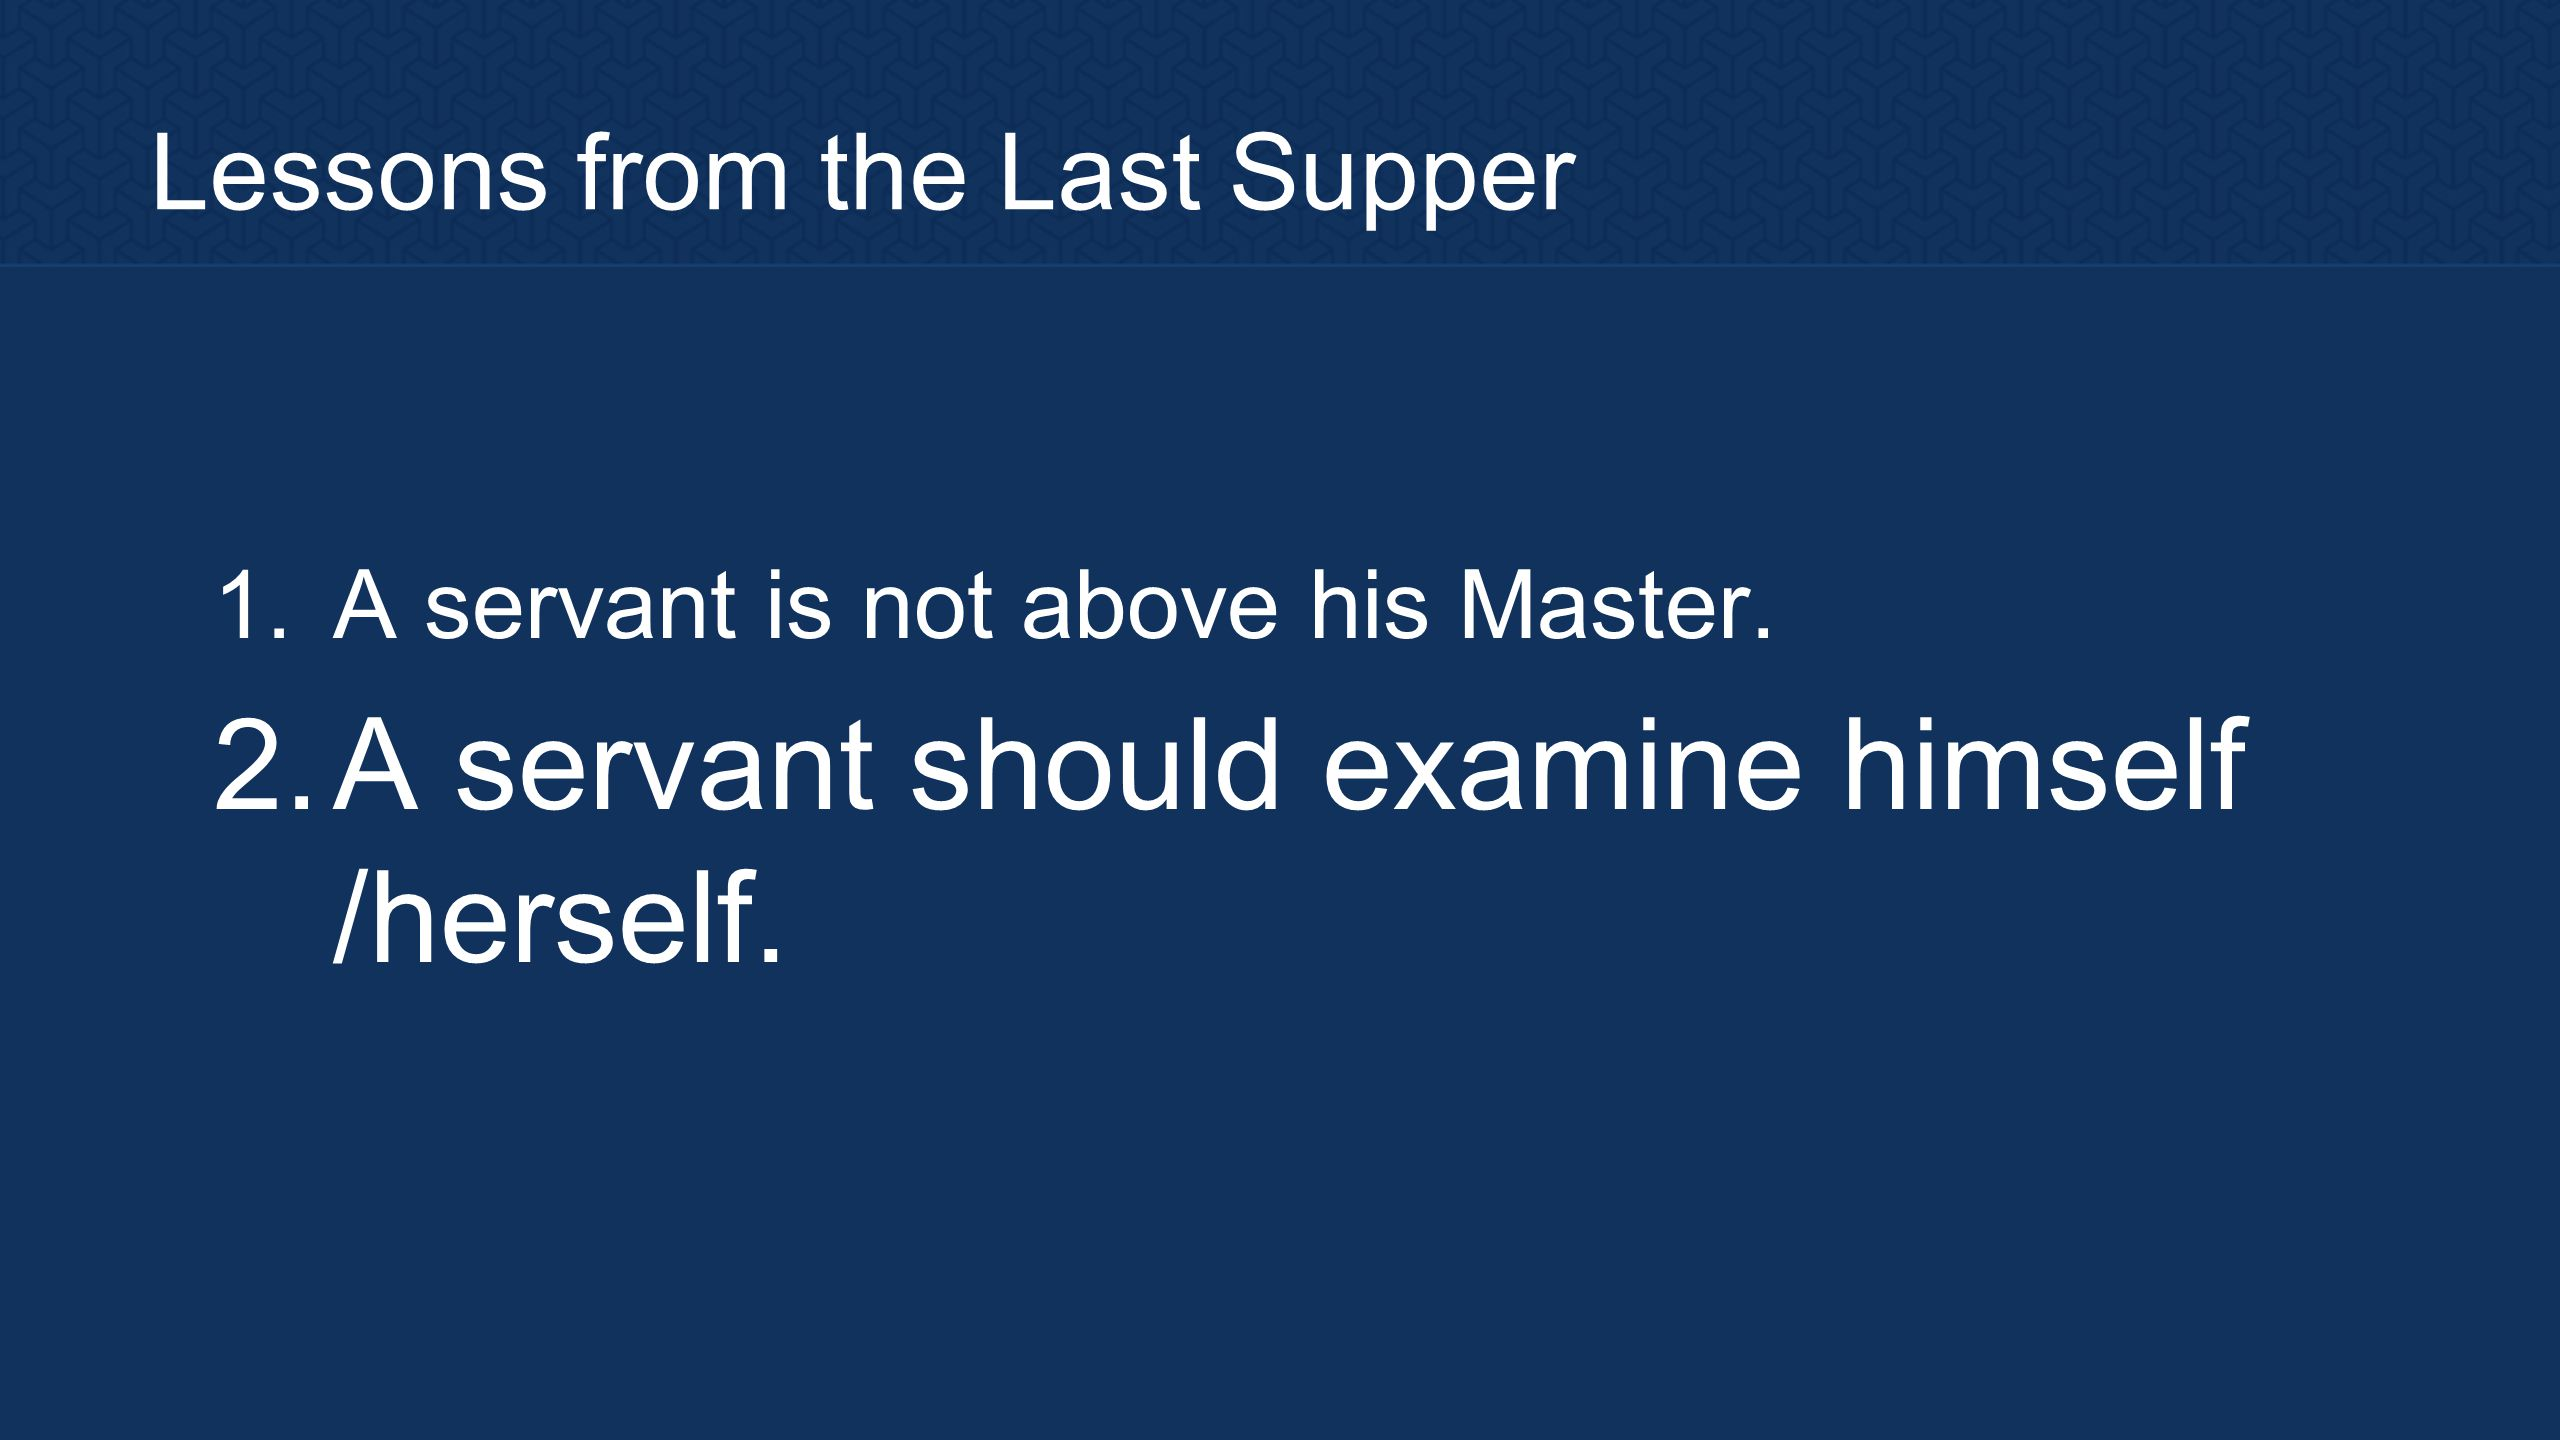 Lessons from the Last Supper 1. A servant is not above his Master. 2. A servant should examine himself /herself.